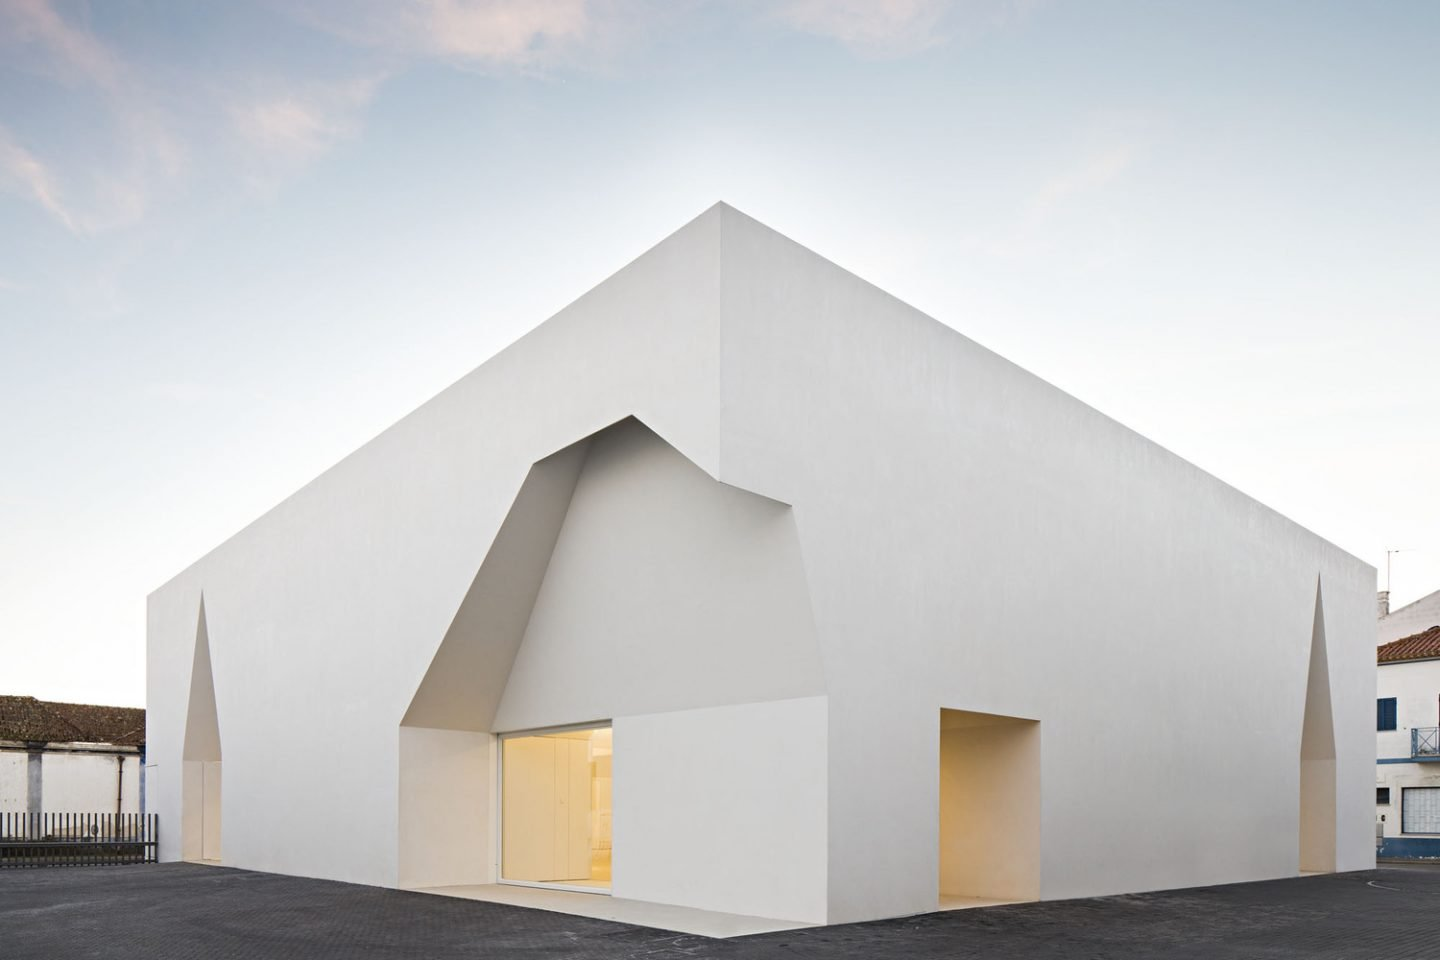 iGNANT_Architecture_Aires_Mateus_Monolithic_Meeting_Center_Grandola_3